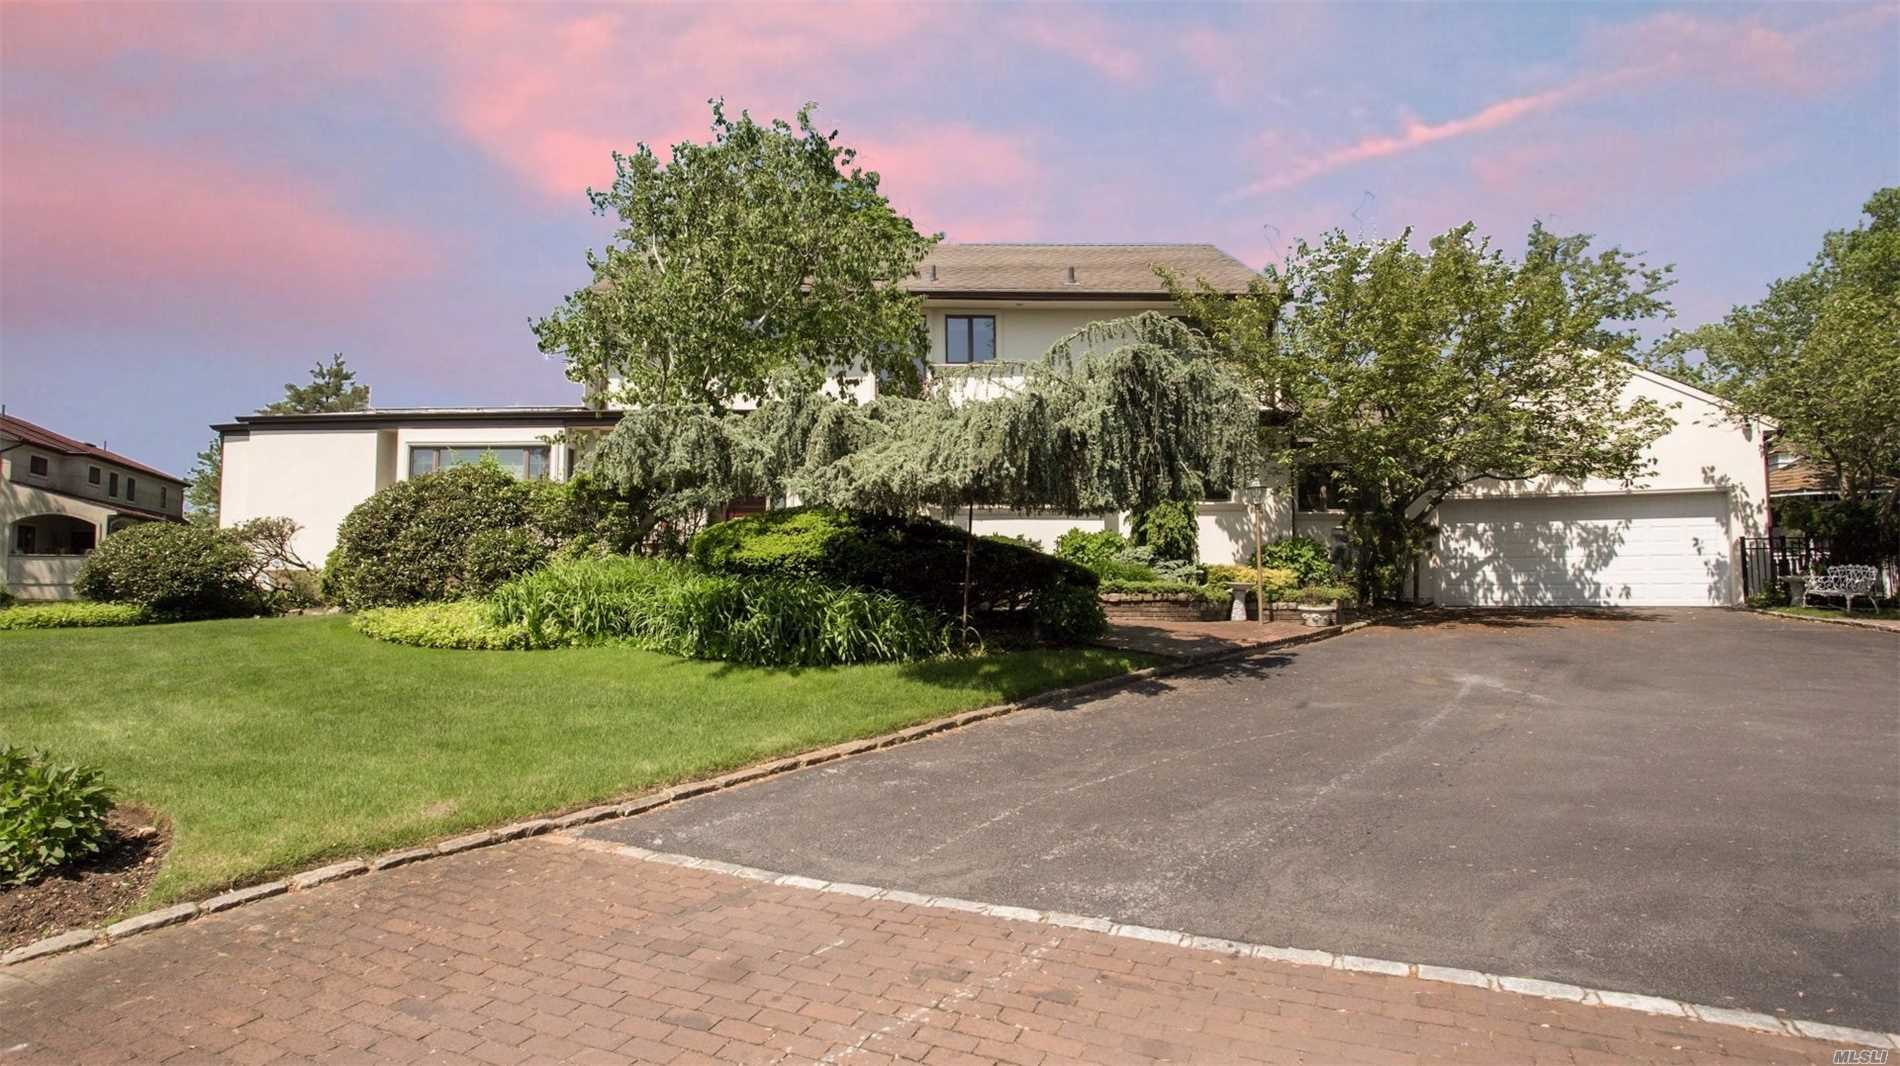 Photo of home for sale at 6 Willow Ln, Hewlett Harbor NY